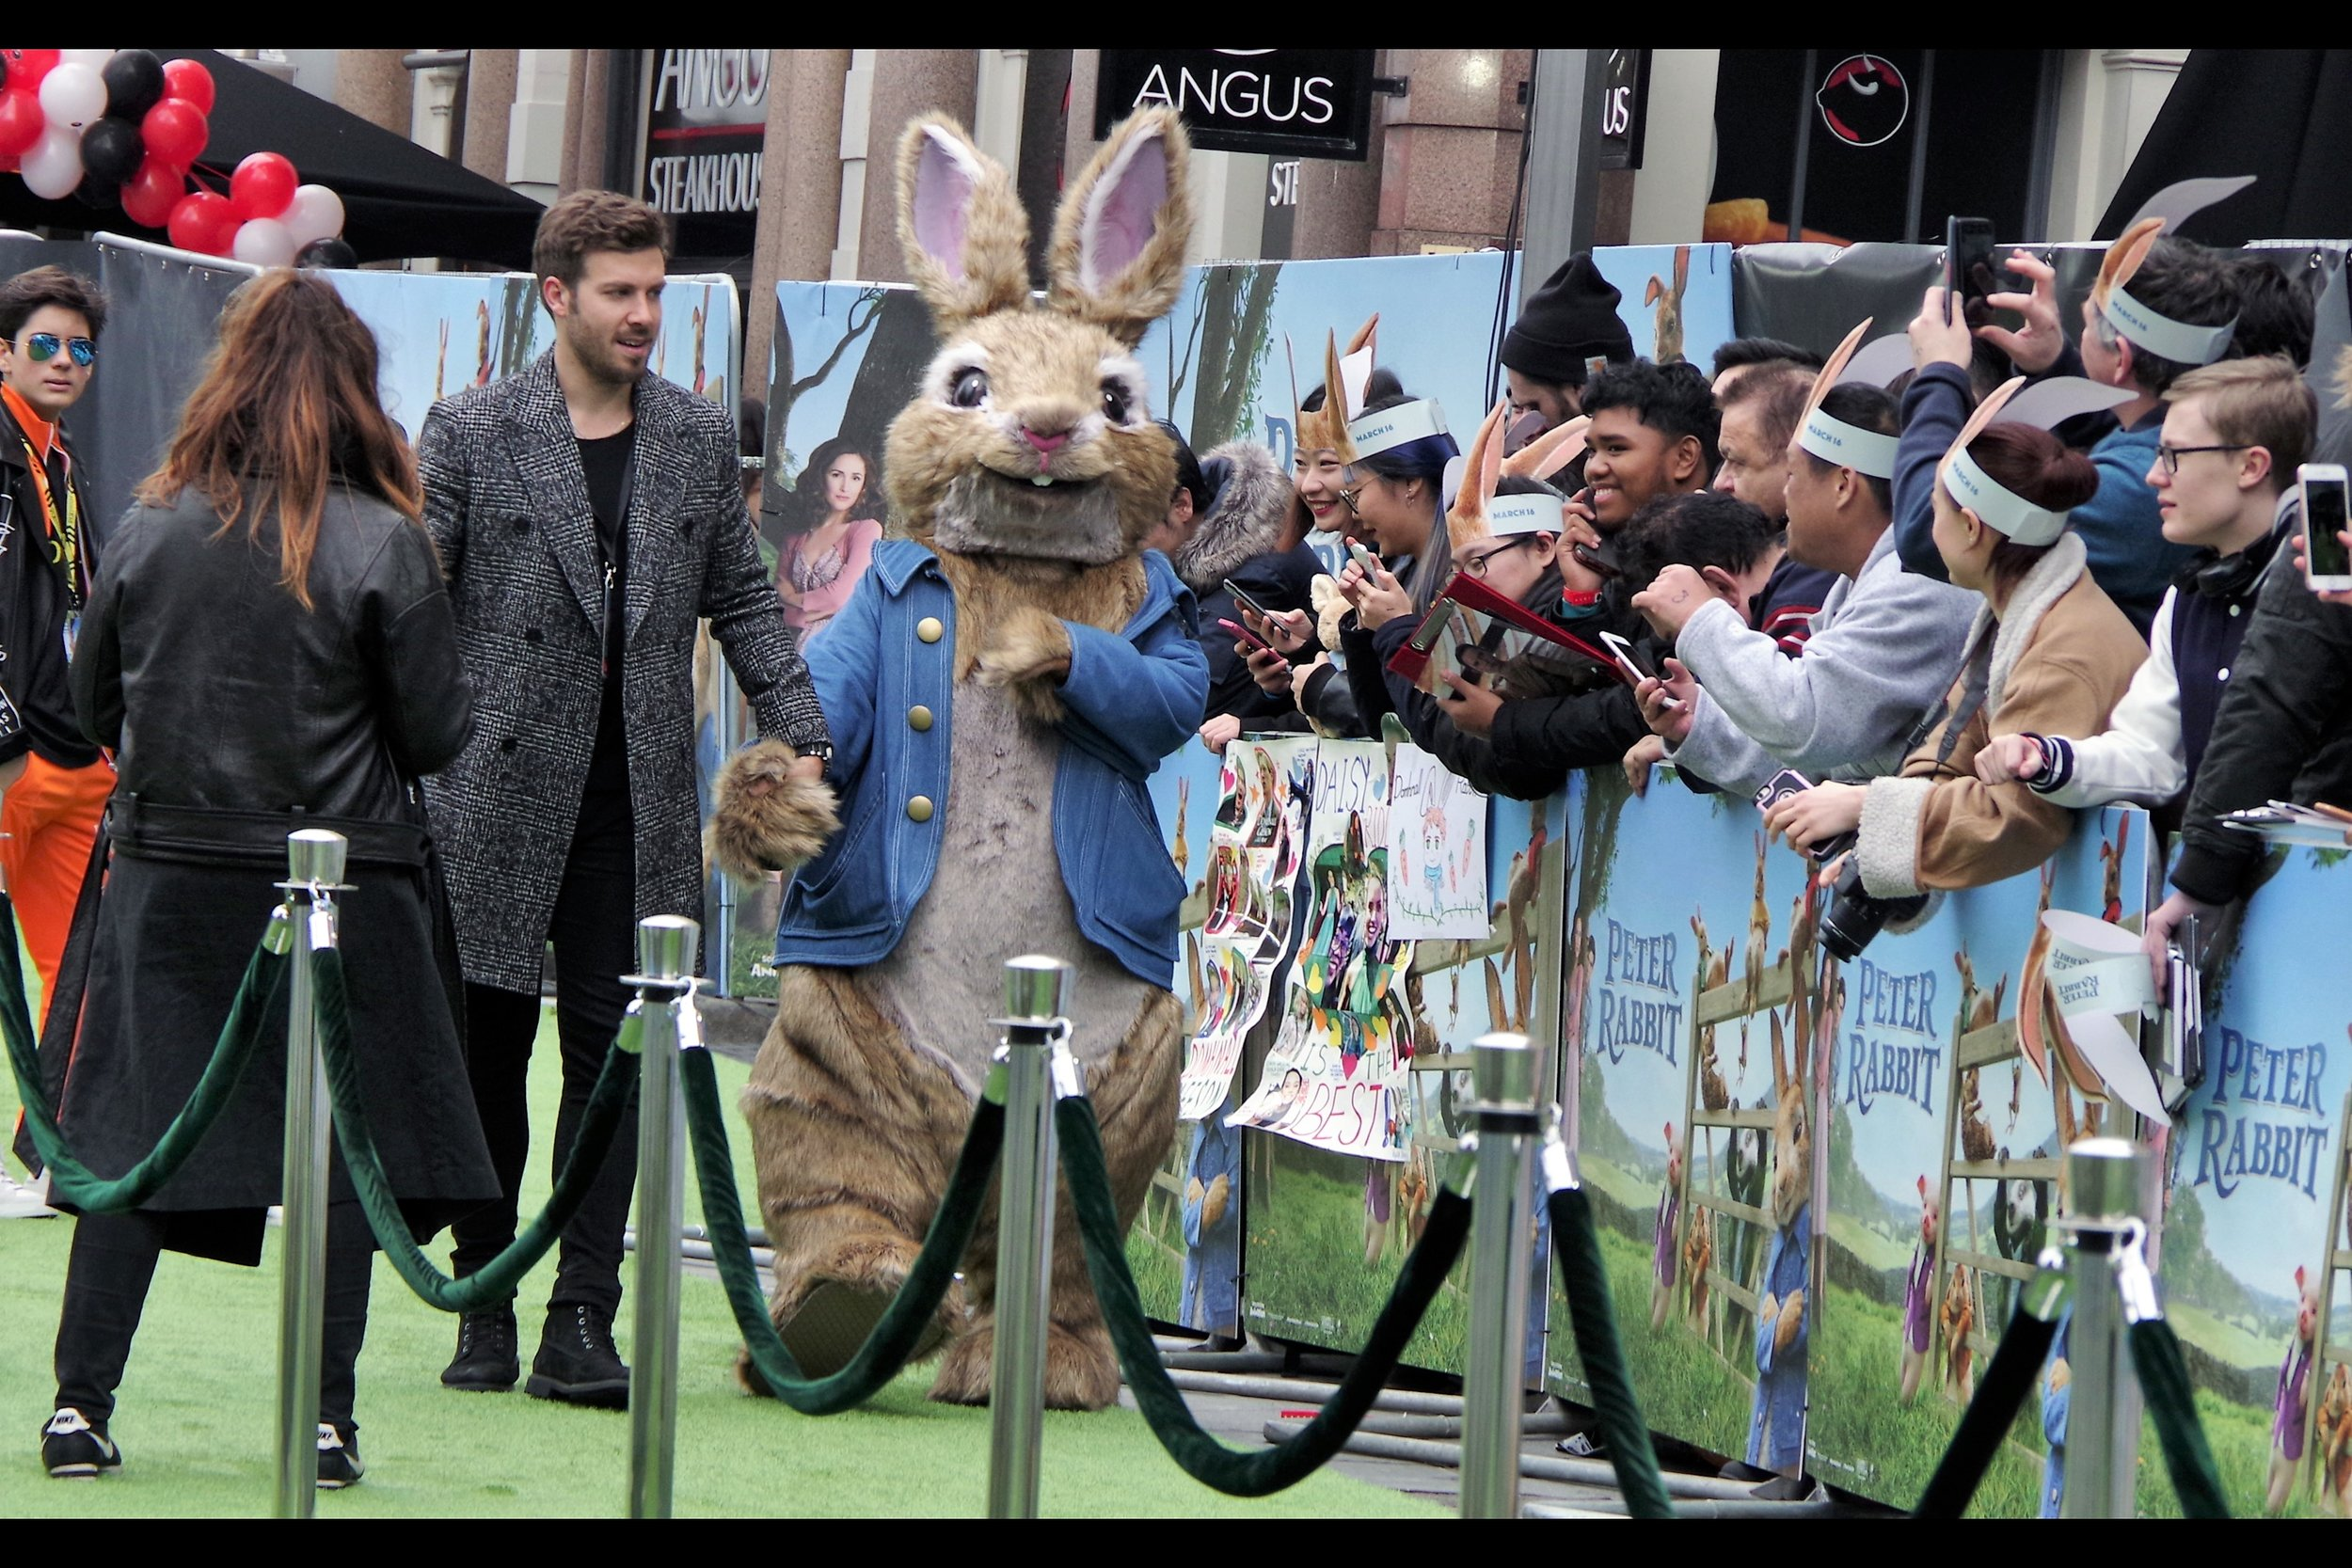 """""""I can't see a thing in this. And you're certain you've dressed me up as a stormtrooper?""""  - It's Peter Rabbit! And either Domhnall Gleeson is about 3x bigger than the average human being, or this is a larger-than-lifesize Peter Rabbit."""